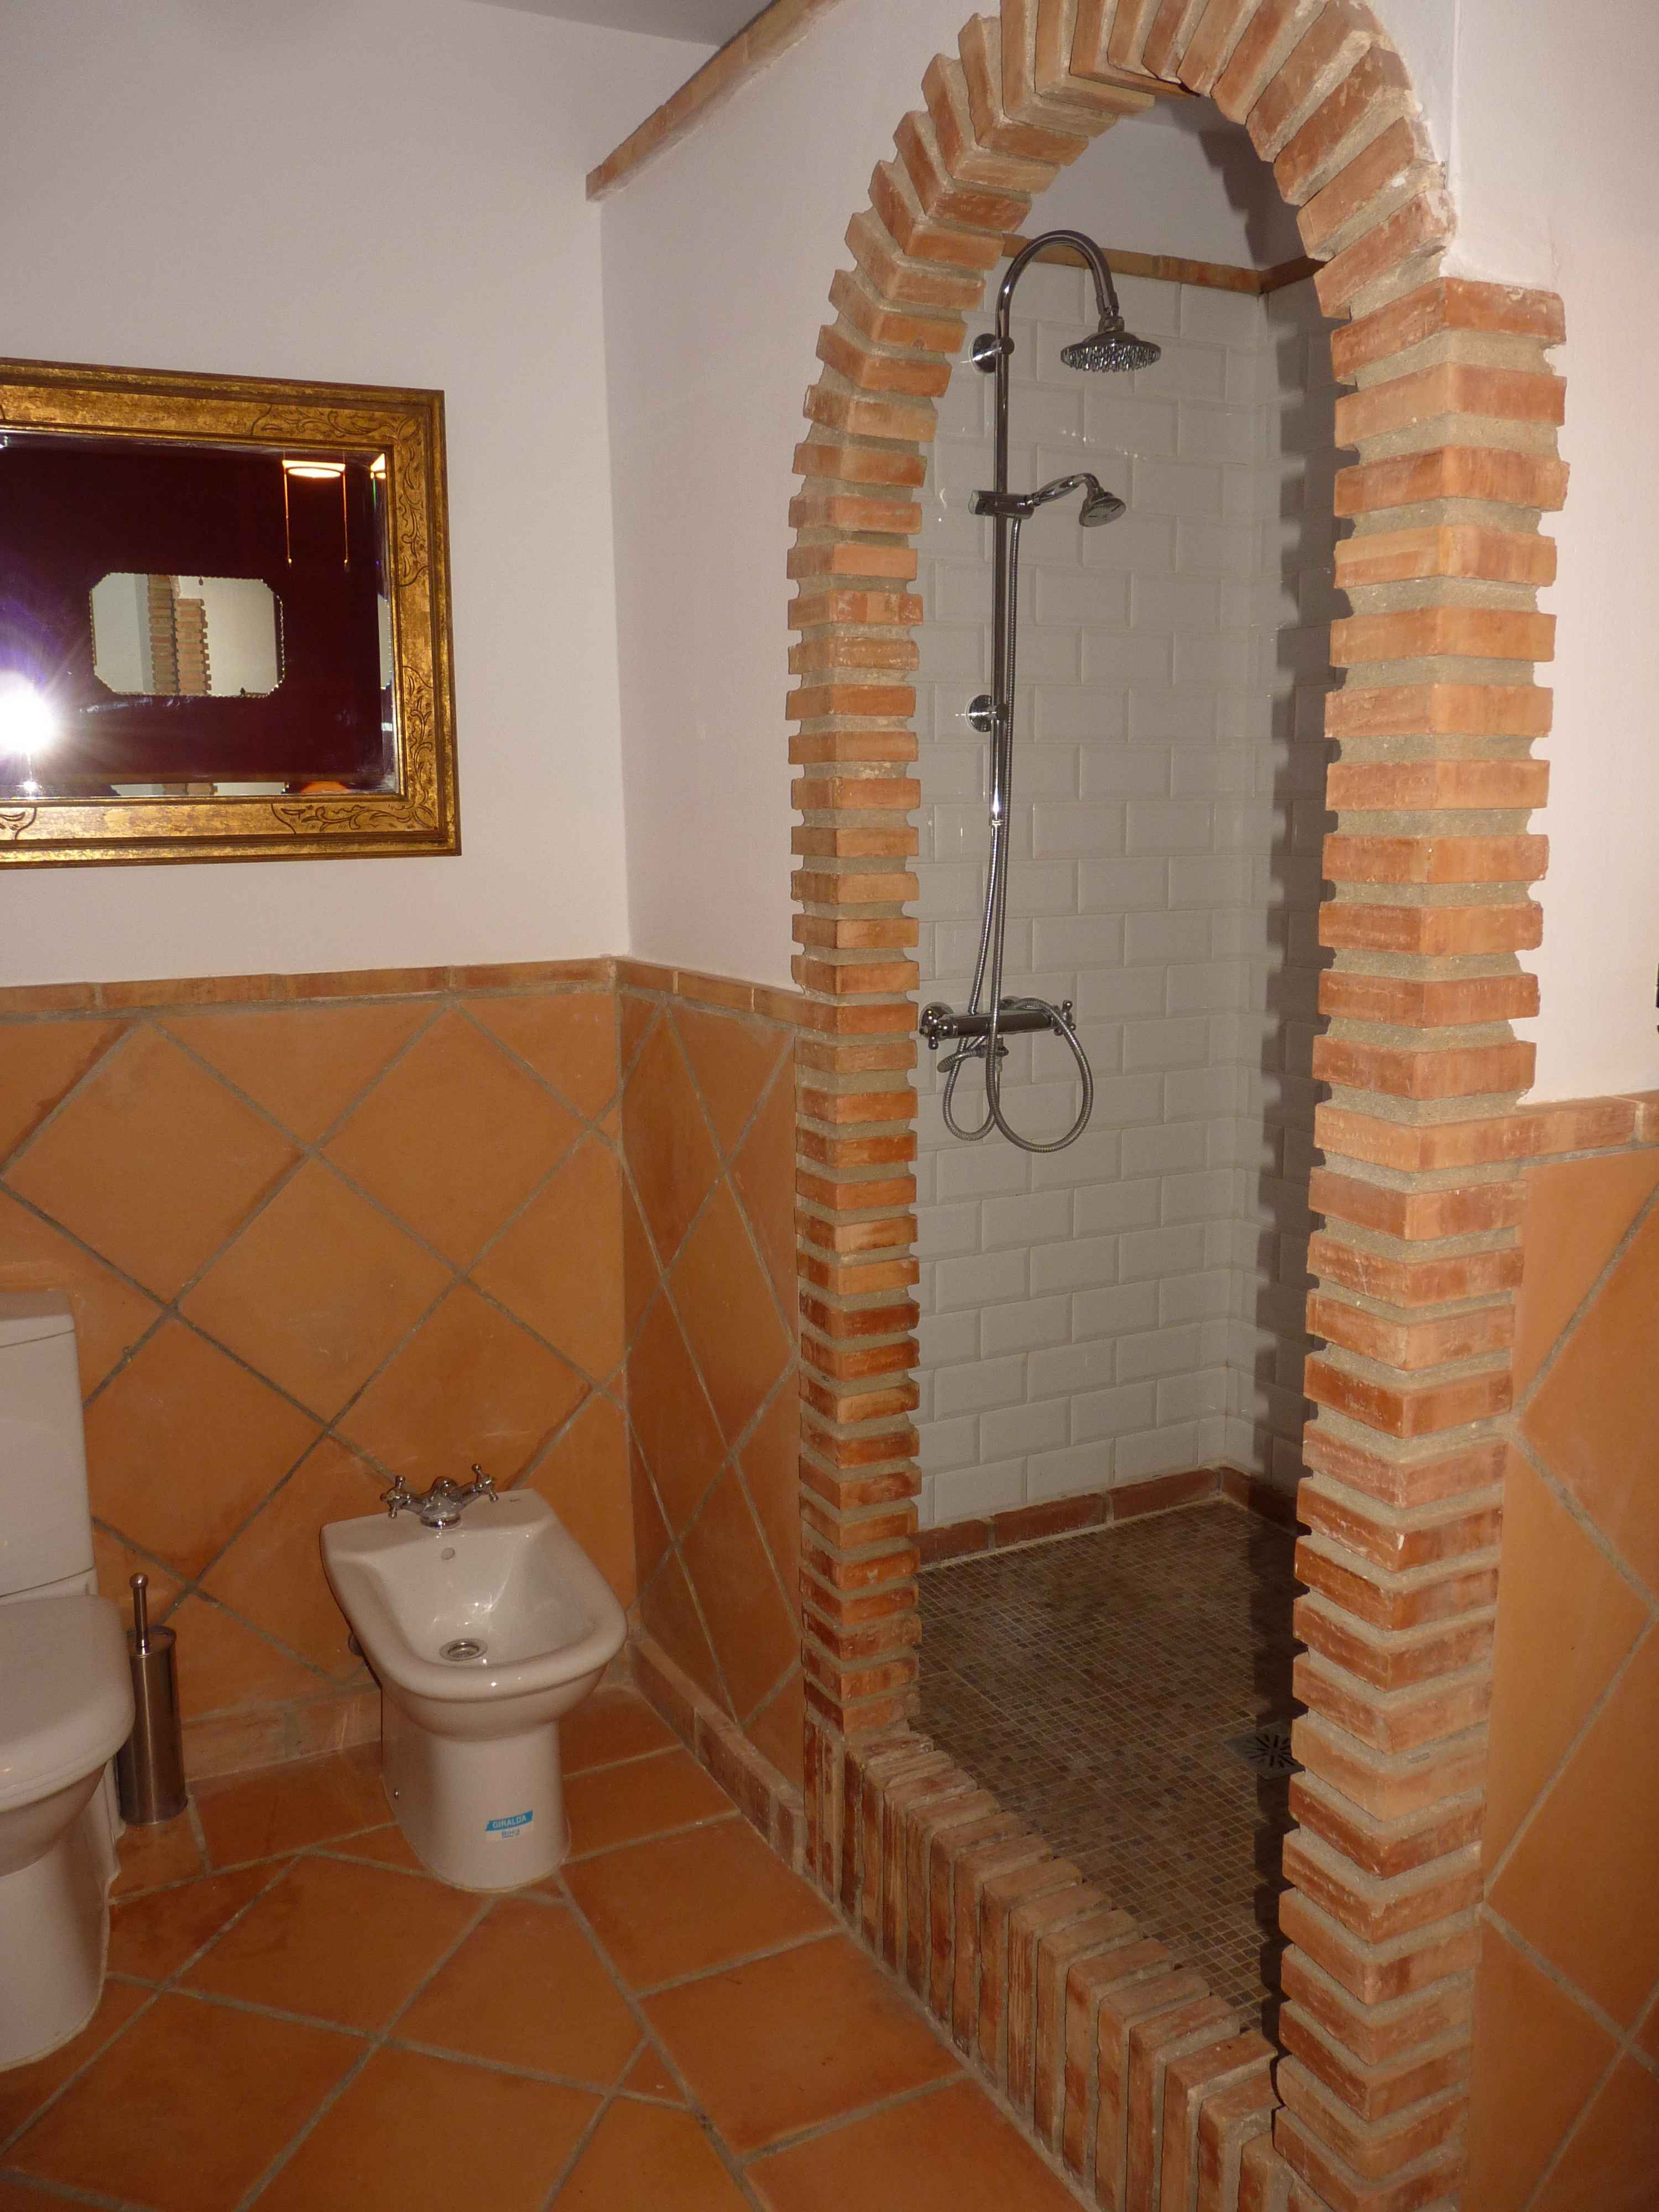 Wonderful Business Opportunity or Unique House To Live In. Antequera.properties/28/21.jpeg